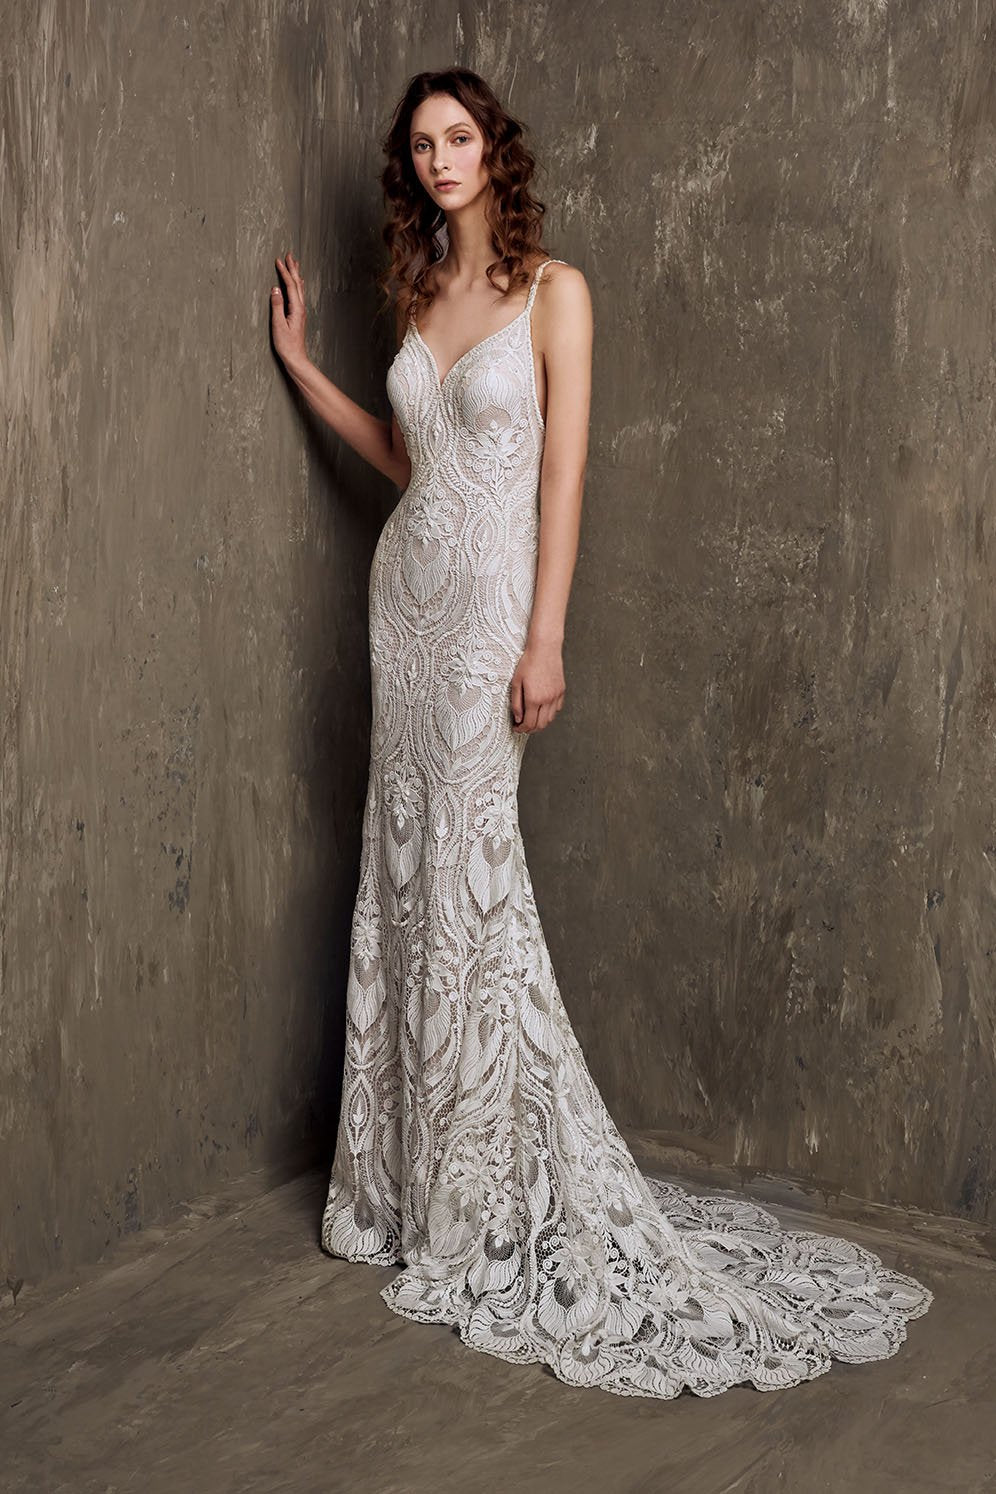 Bette - Sample Gown, Online Sample Sale, Chic Nostalgia - Sample Gown - Eternal Bridal